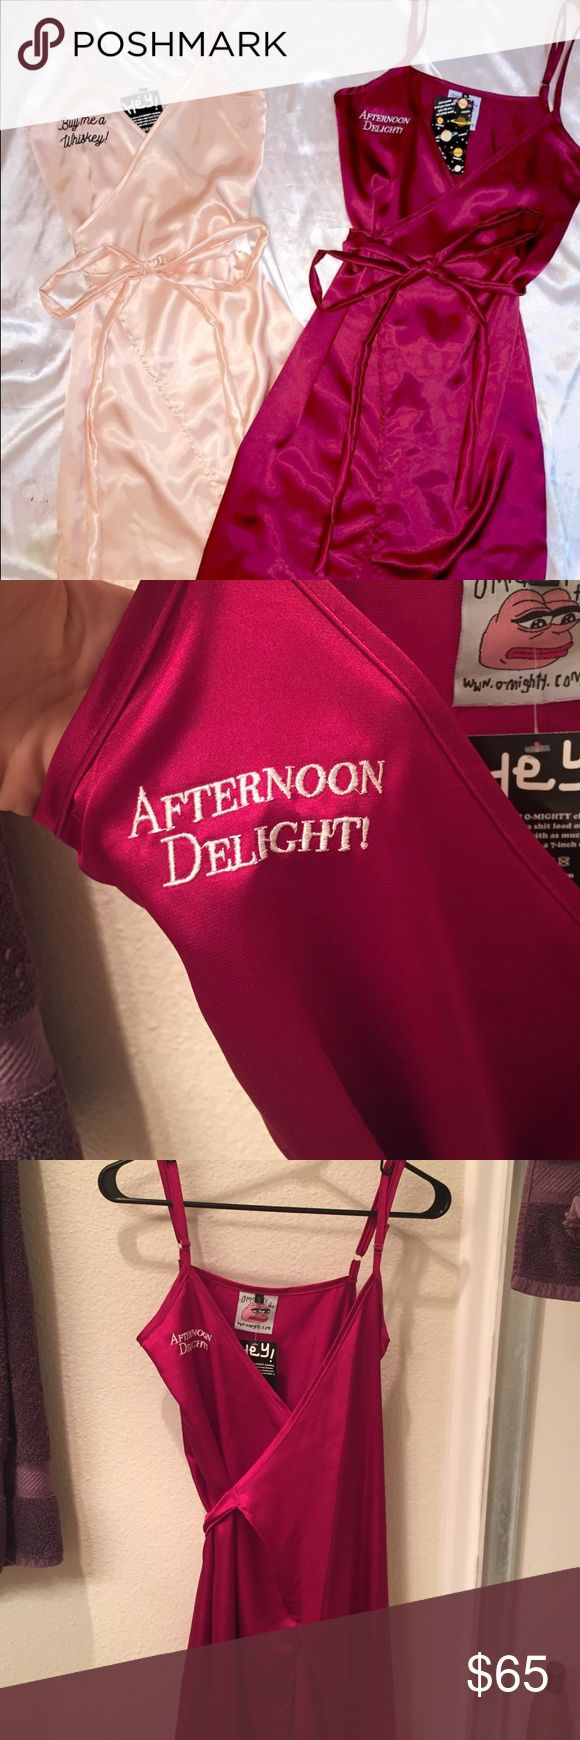 O-Mighty Afternoon Delight Wrap Dress O-Mighty Afternoon Delight wrap dress maroon in perfect condition. New with tags. Size Small. I'm short and just didn't like the length for my body. O-Mighty Dresses Midi